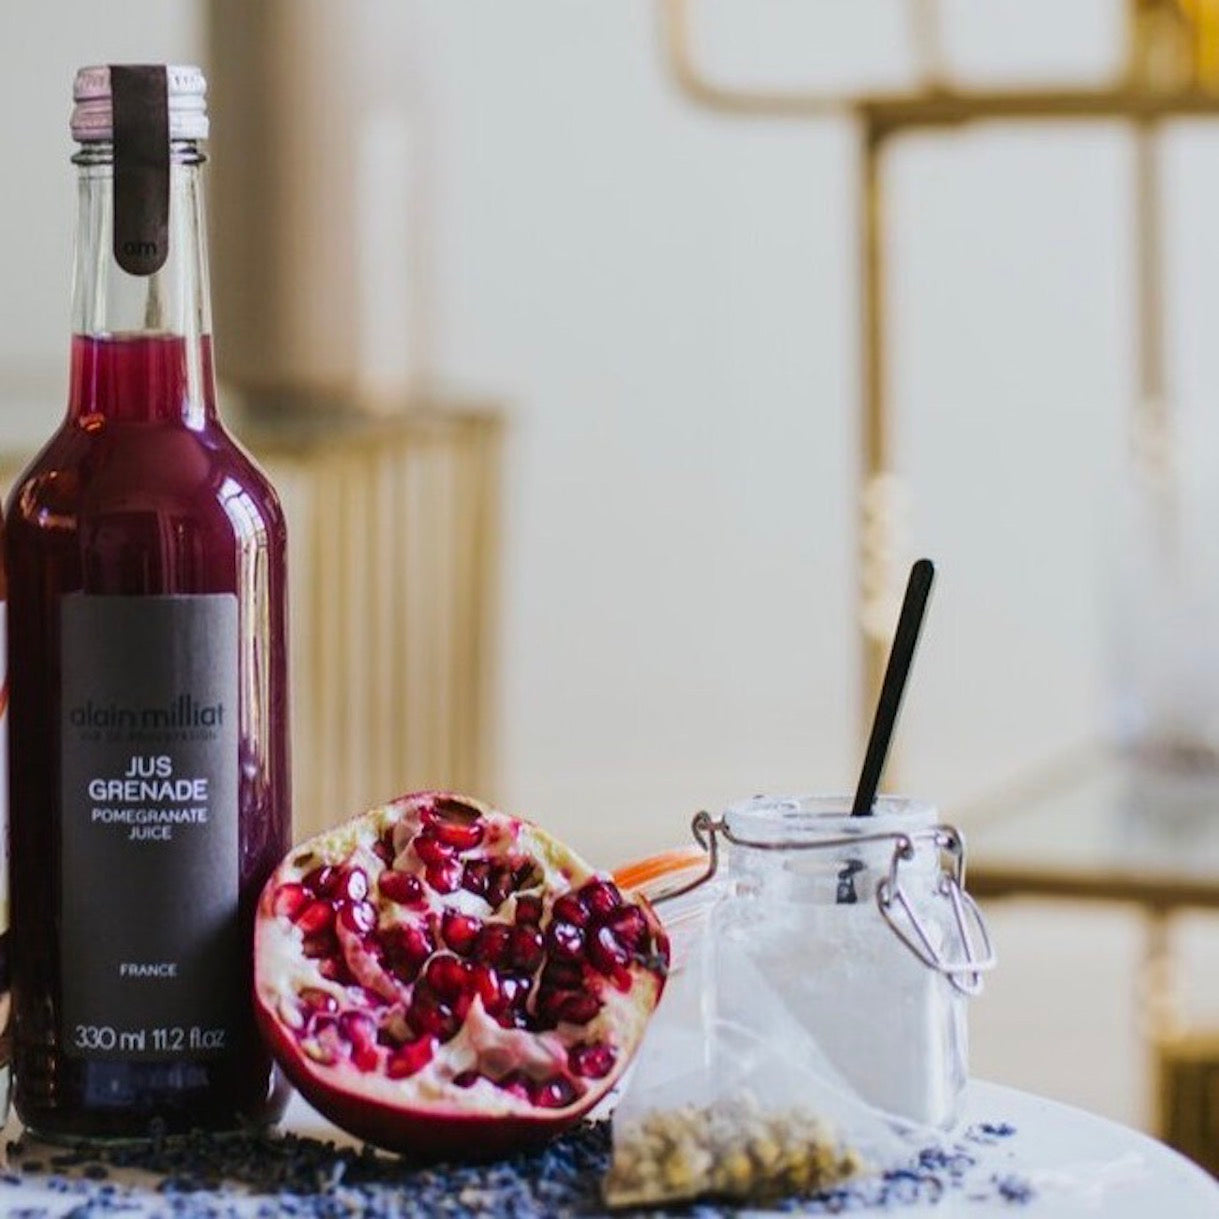 pomegranate-juice-alain-milliat-online-grocery-delivery-singapore-thenewgrocer